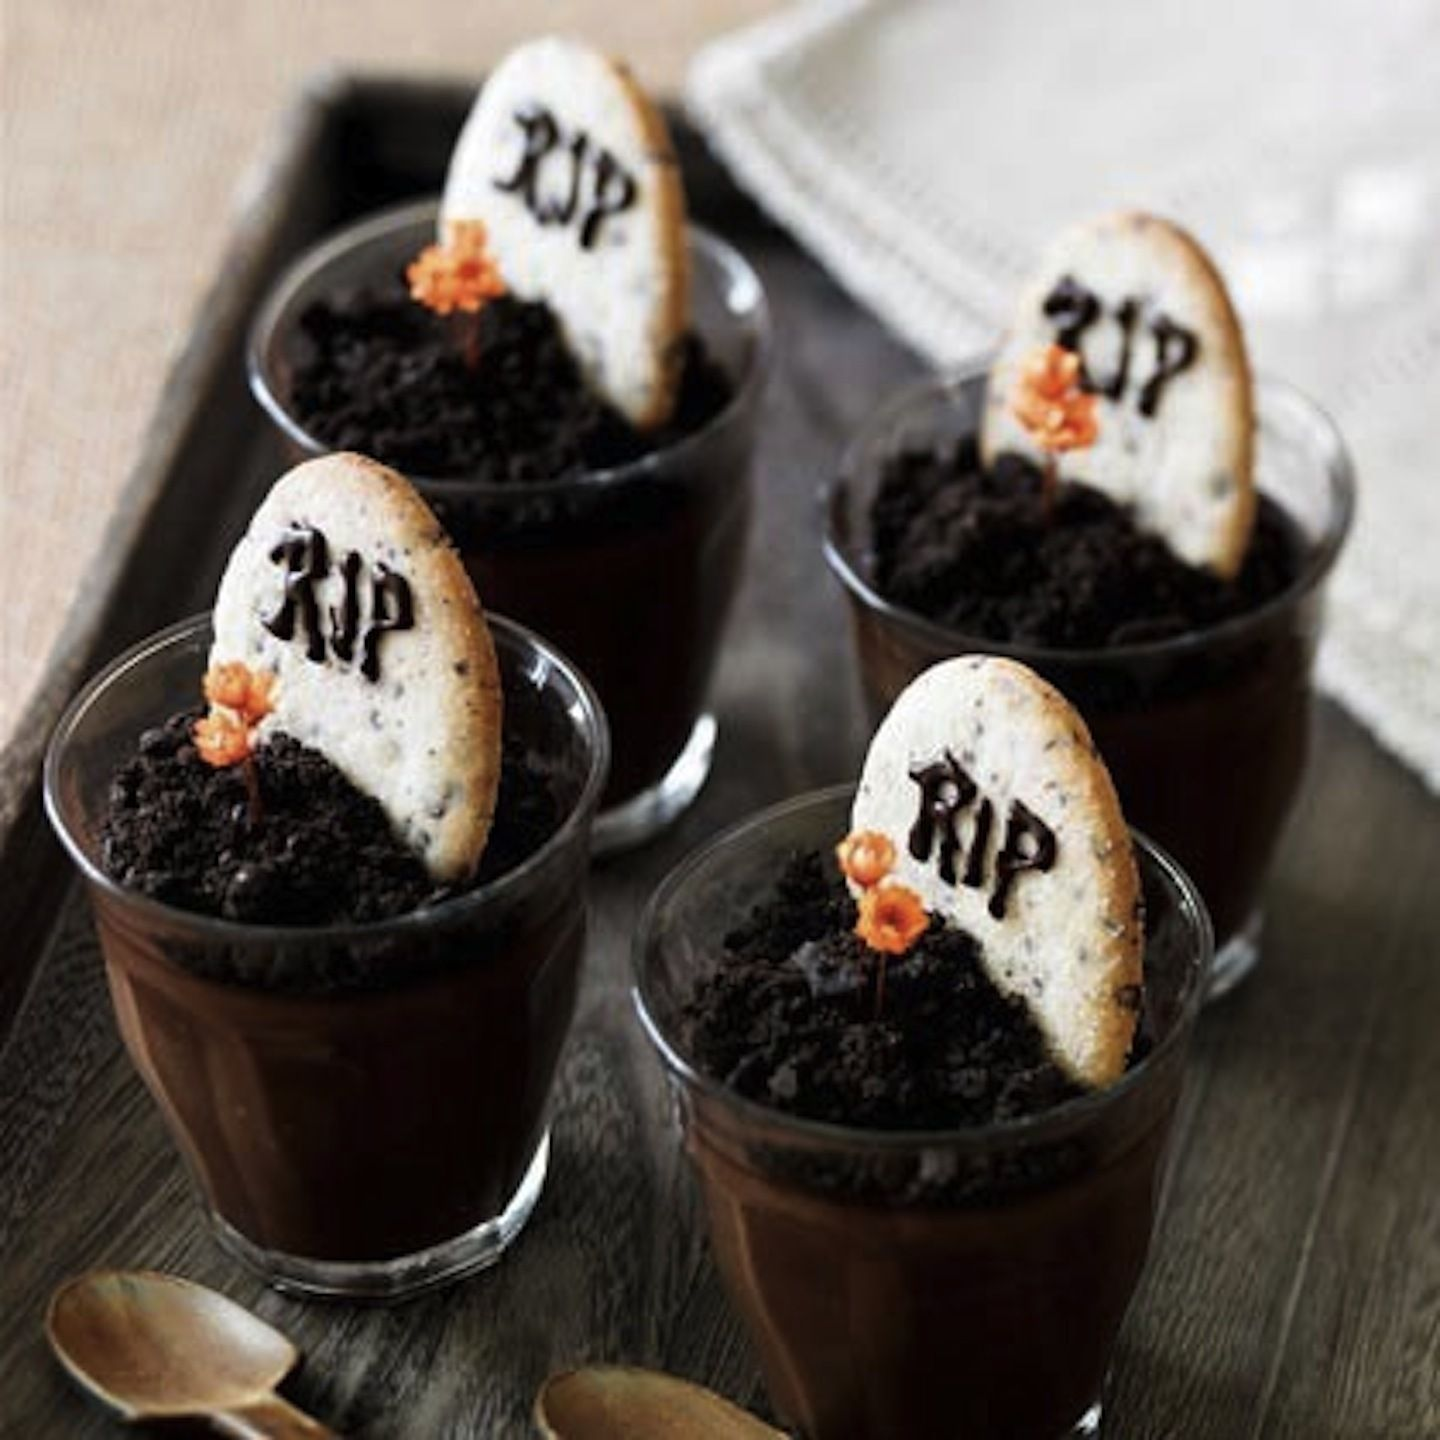 Graveyard Pudding  Turn your chocolate pudding cups into miniature graveyards! Just throw some dirt on top (crumbled chocolate cookies, Oreos are a good choice!) and a cookie tombstone. Pepperidge Farm Milanos work well, they are about the right size and have that tombstone shape. Add a frosting RIP on the headstones and toss in some decorative flowers for the full effect.